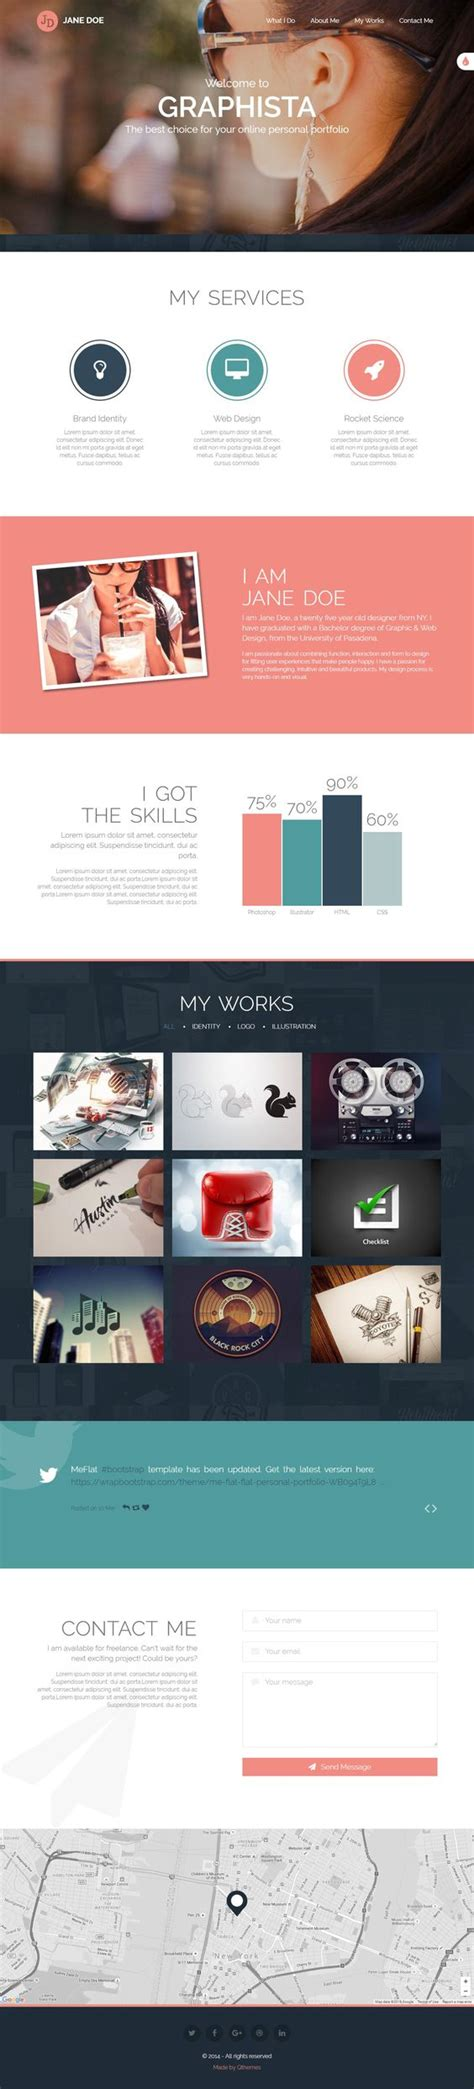 bootstrap tutorial kat cr graphista is a beautiful one page personal portfolio